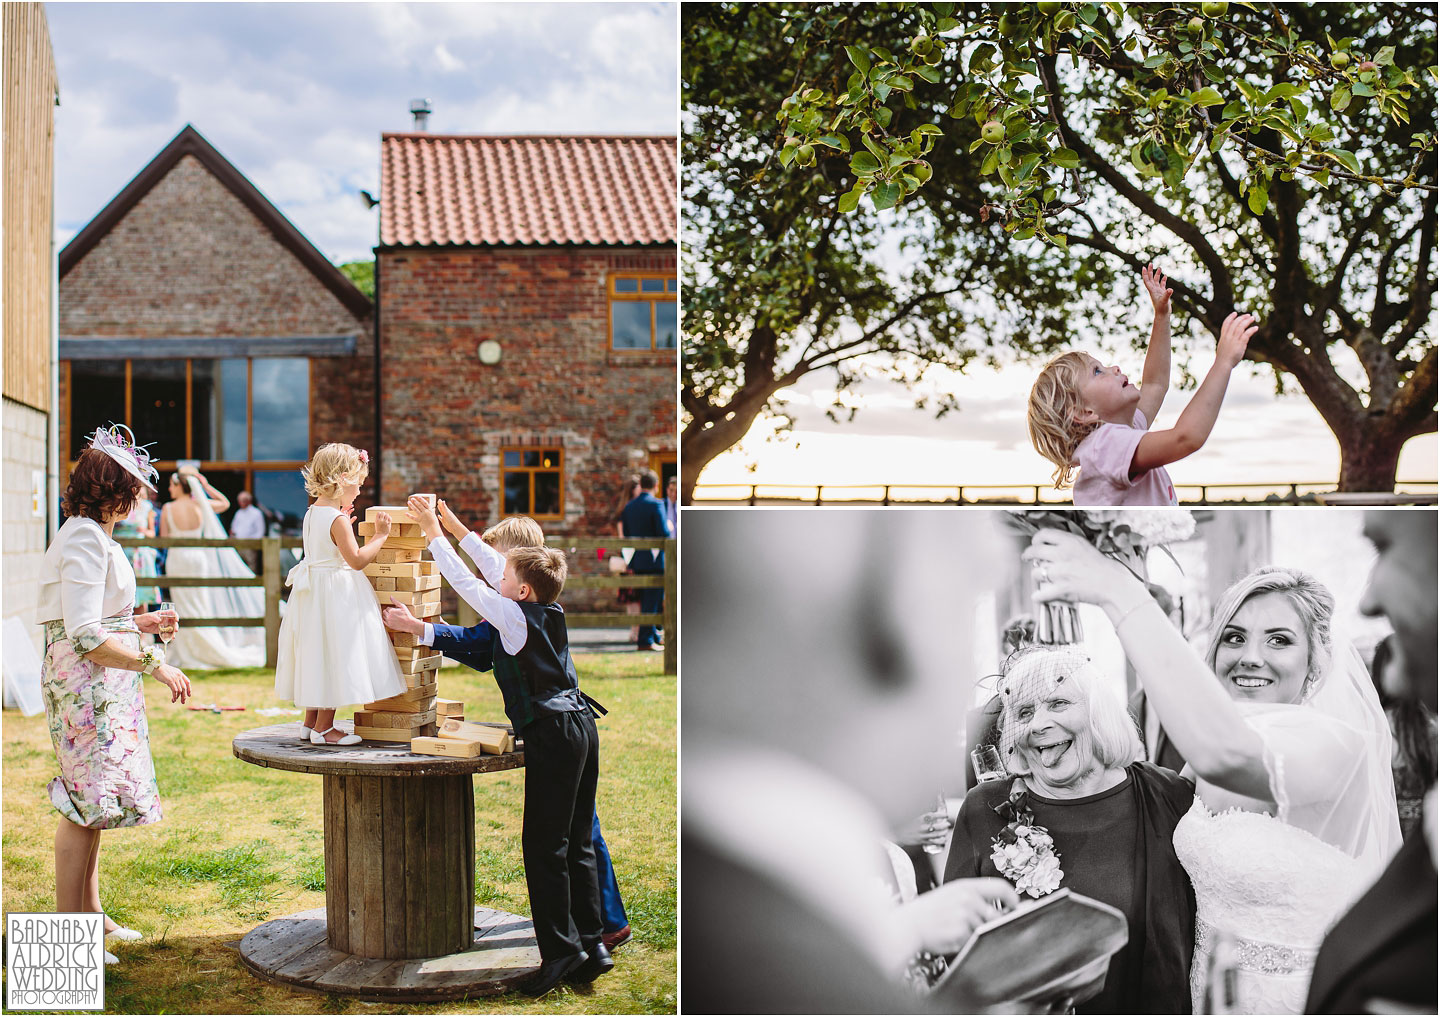 Wedding photography at Barmby Farm Barns near Goole, Amazing Yorkshire Wedding Photos, Best Yorkshire Wedding Photos 2018